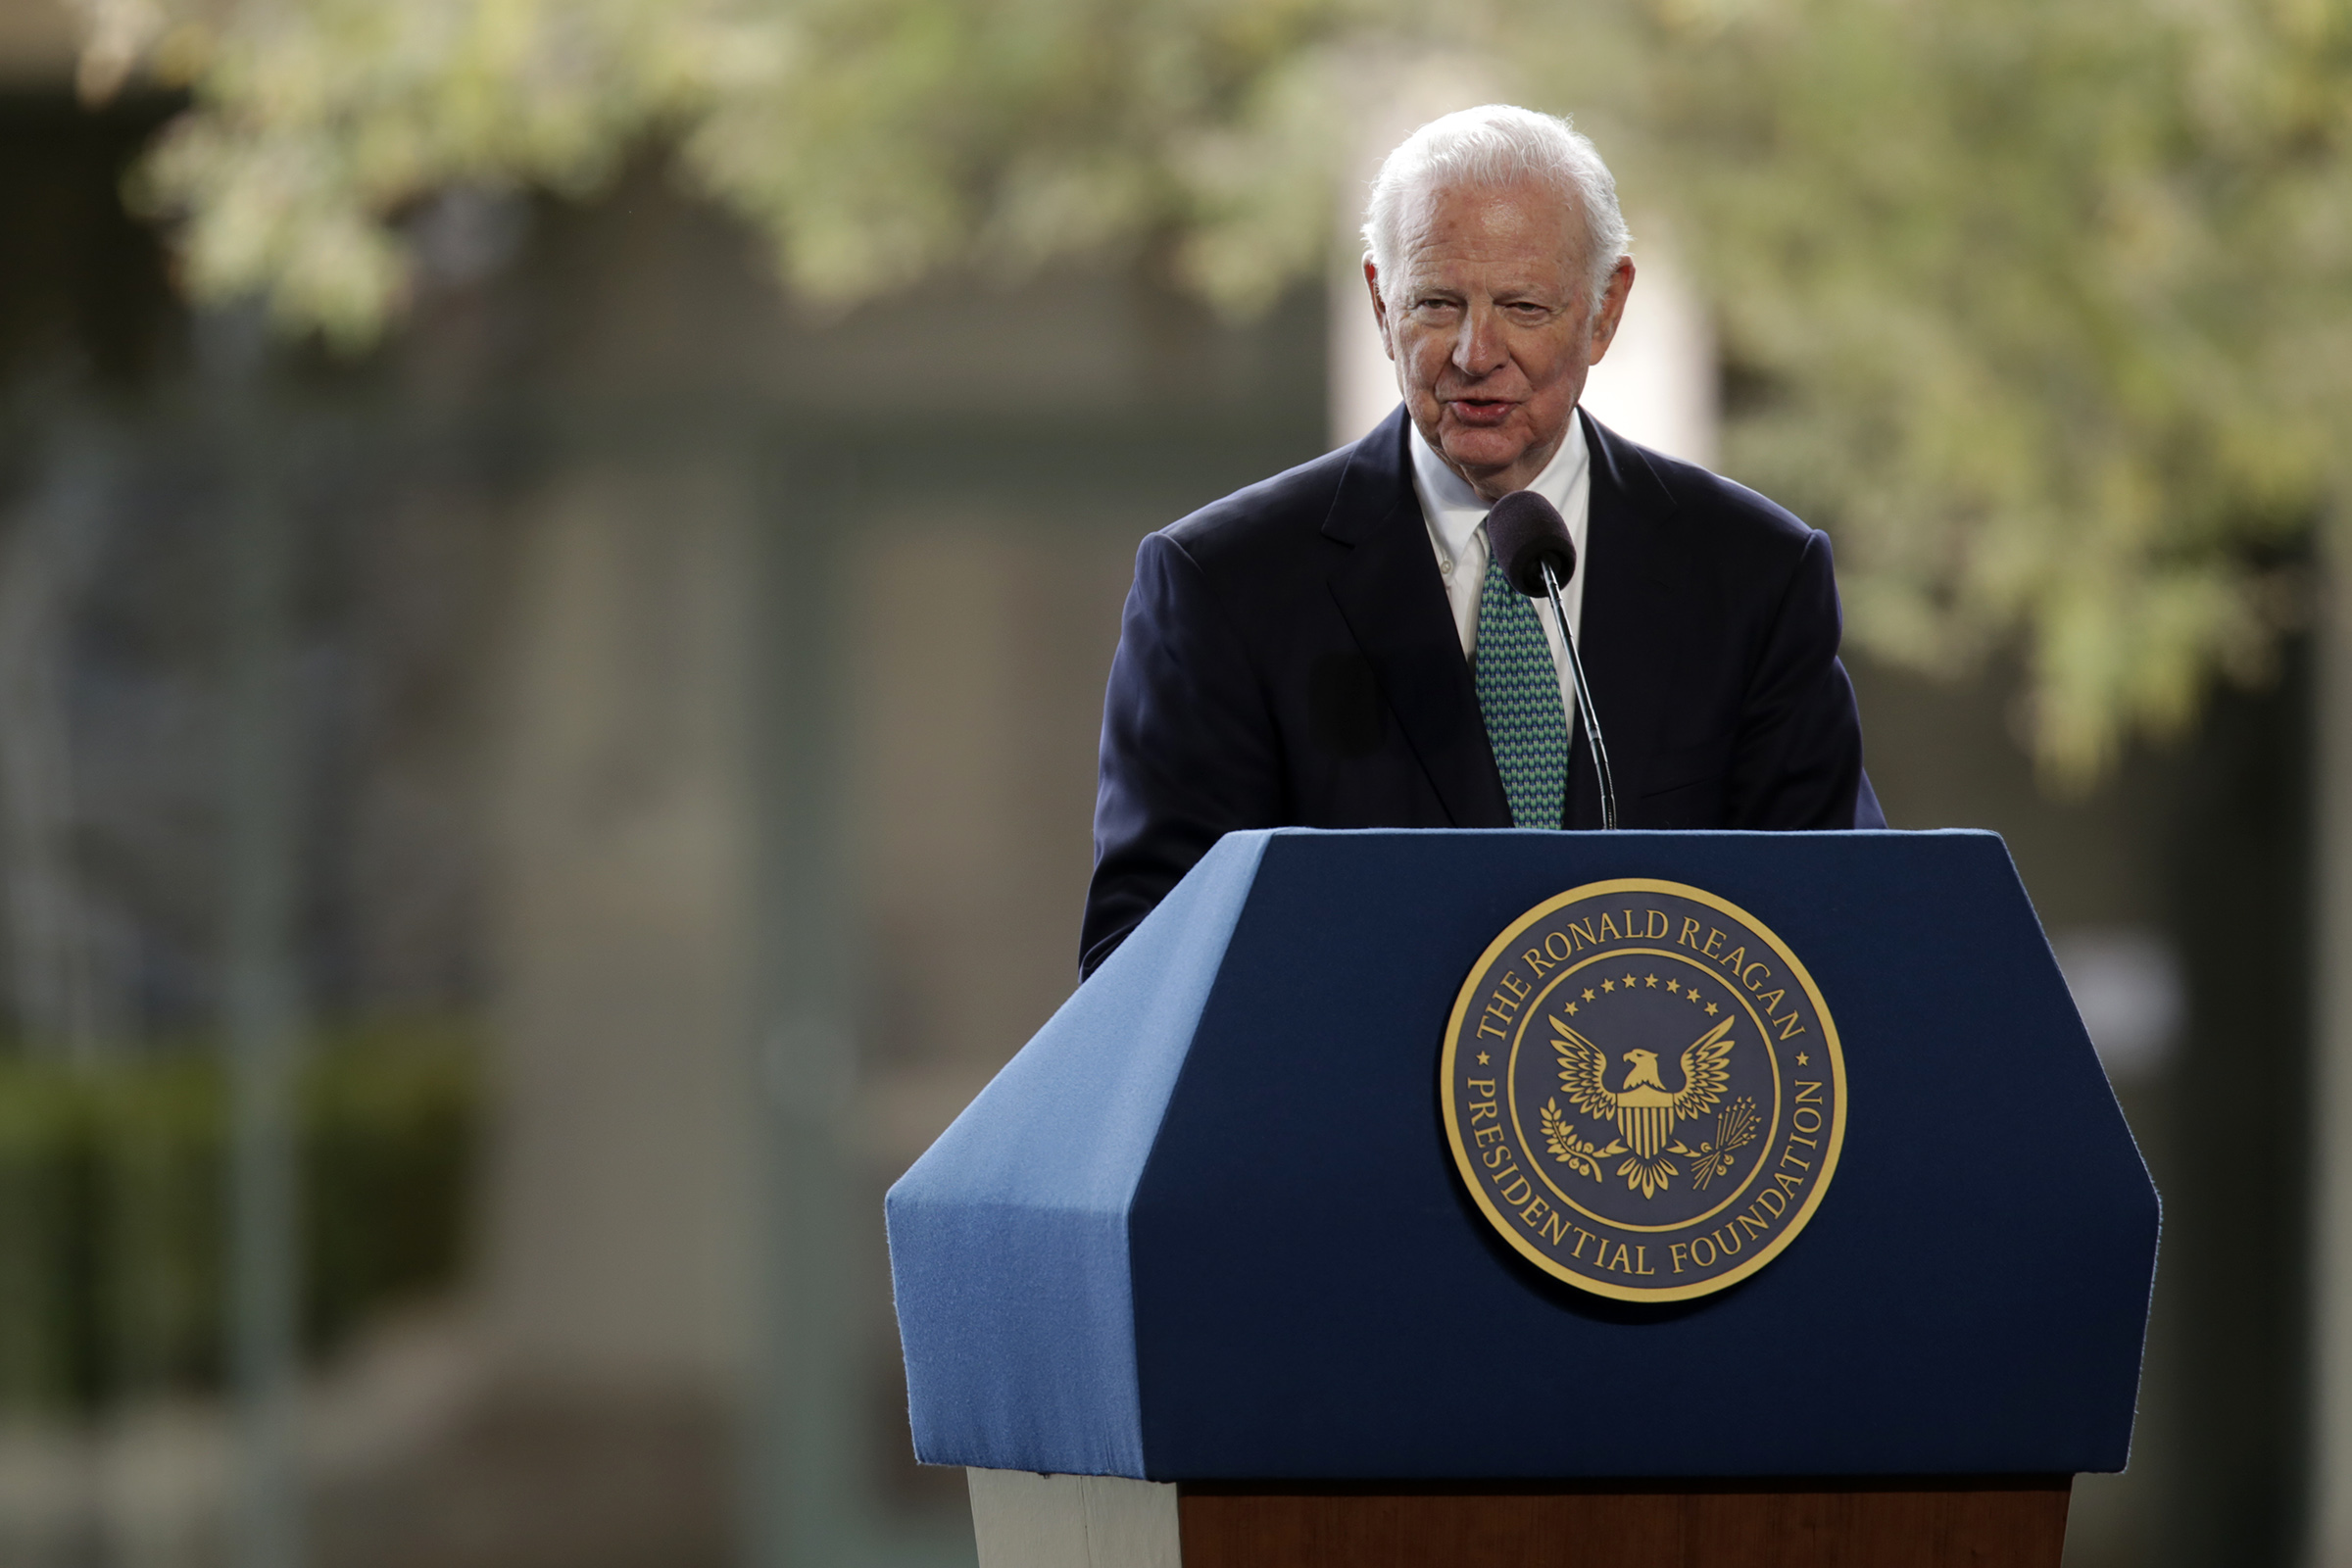 Former Secretary of  State James Baker speaks at the funeral of former First Lady Nancy Reagan on March 11, 2016 in Simi Valley, California. Baker is leading an effort to advocate for a carbon tax.